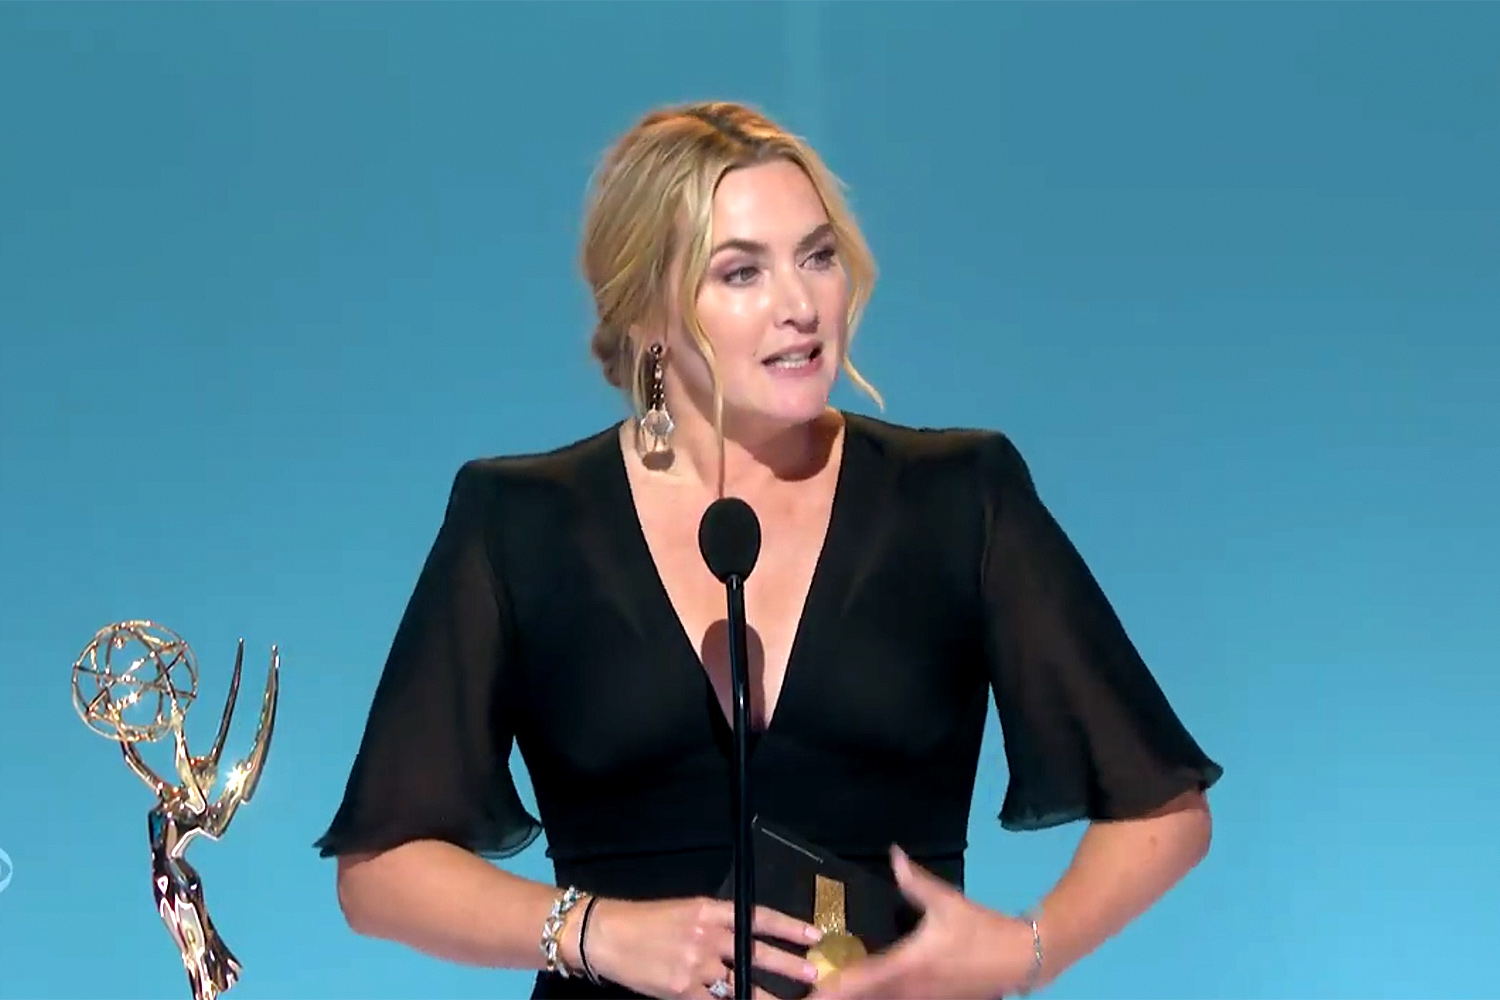 Kate Winslet Lead actress in a limited series or a movie Emmy award.